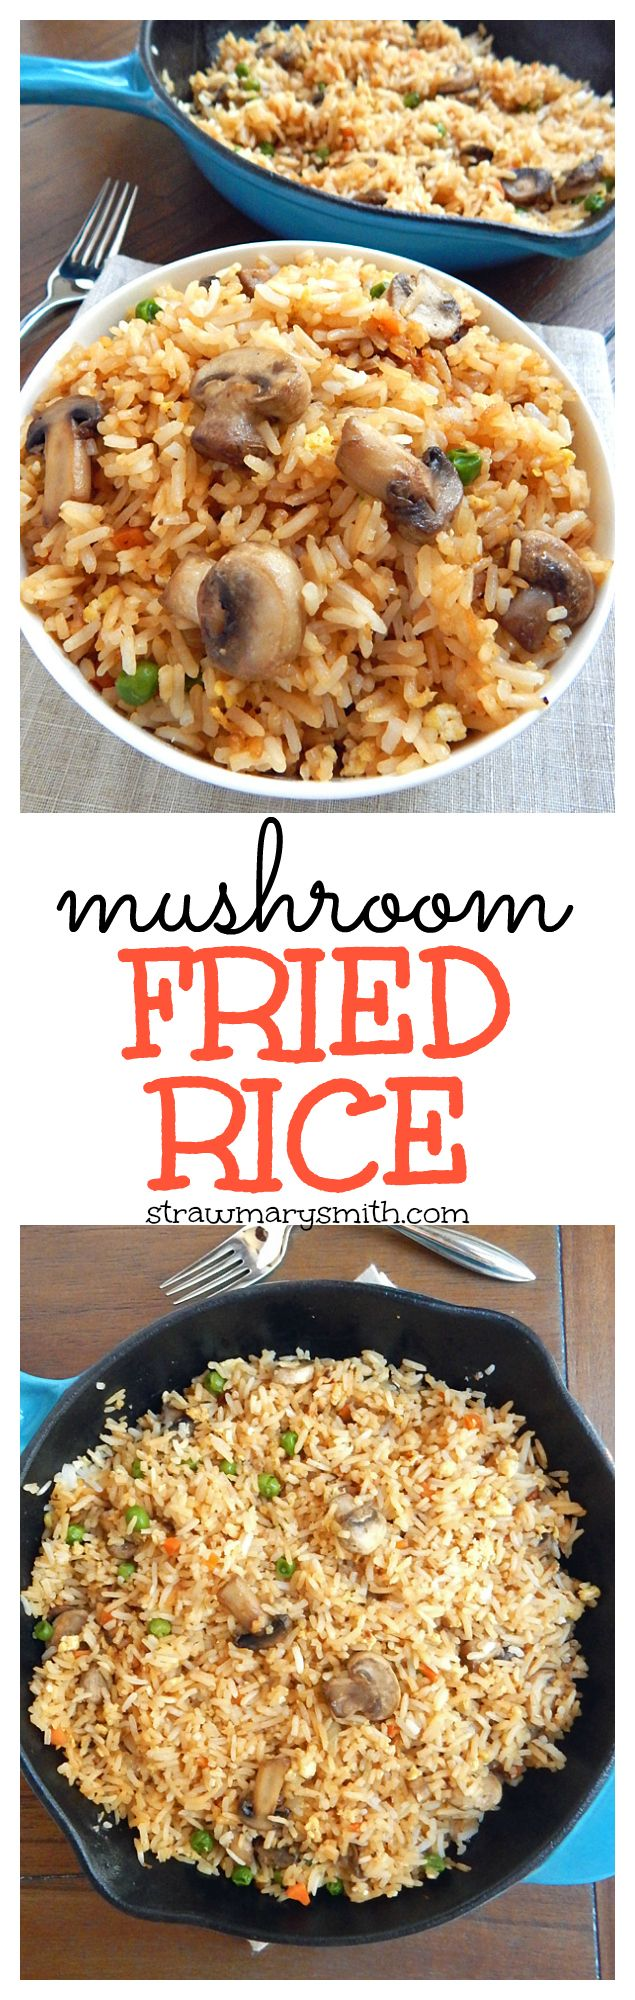 Mushroom Fried Rice is a weeknight skillet meal for two that's ready in just 20 minutes, and it's gluten free!